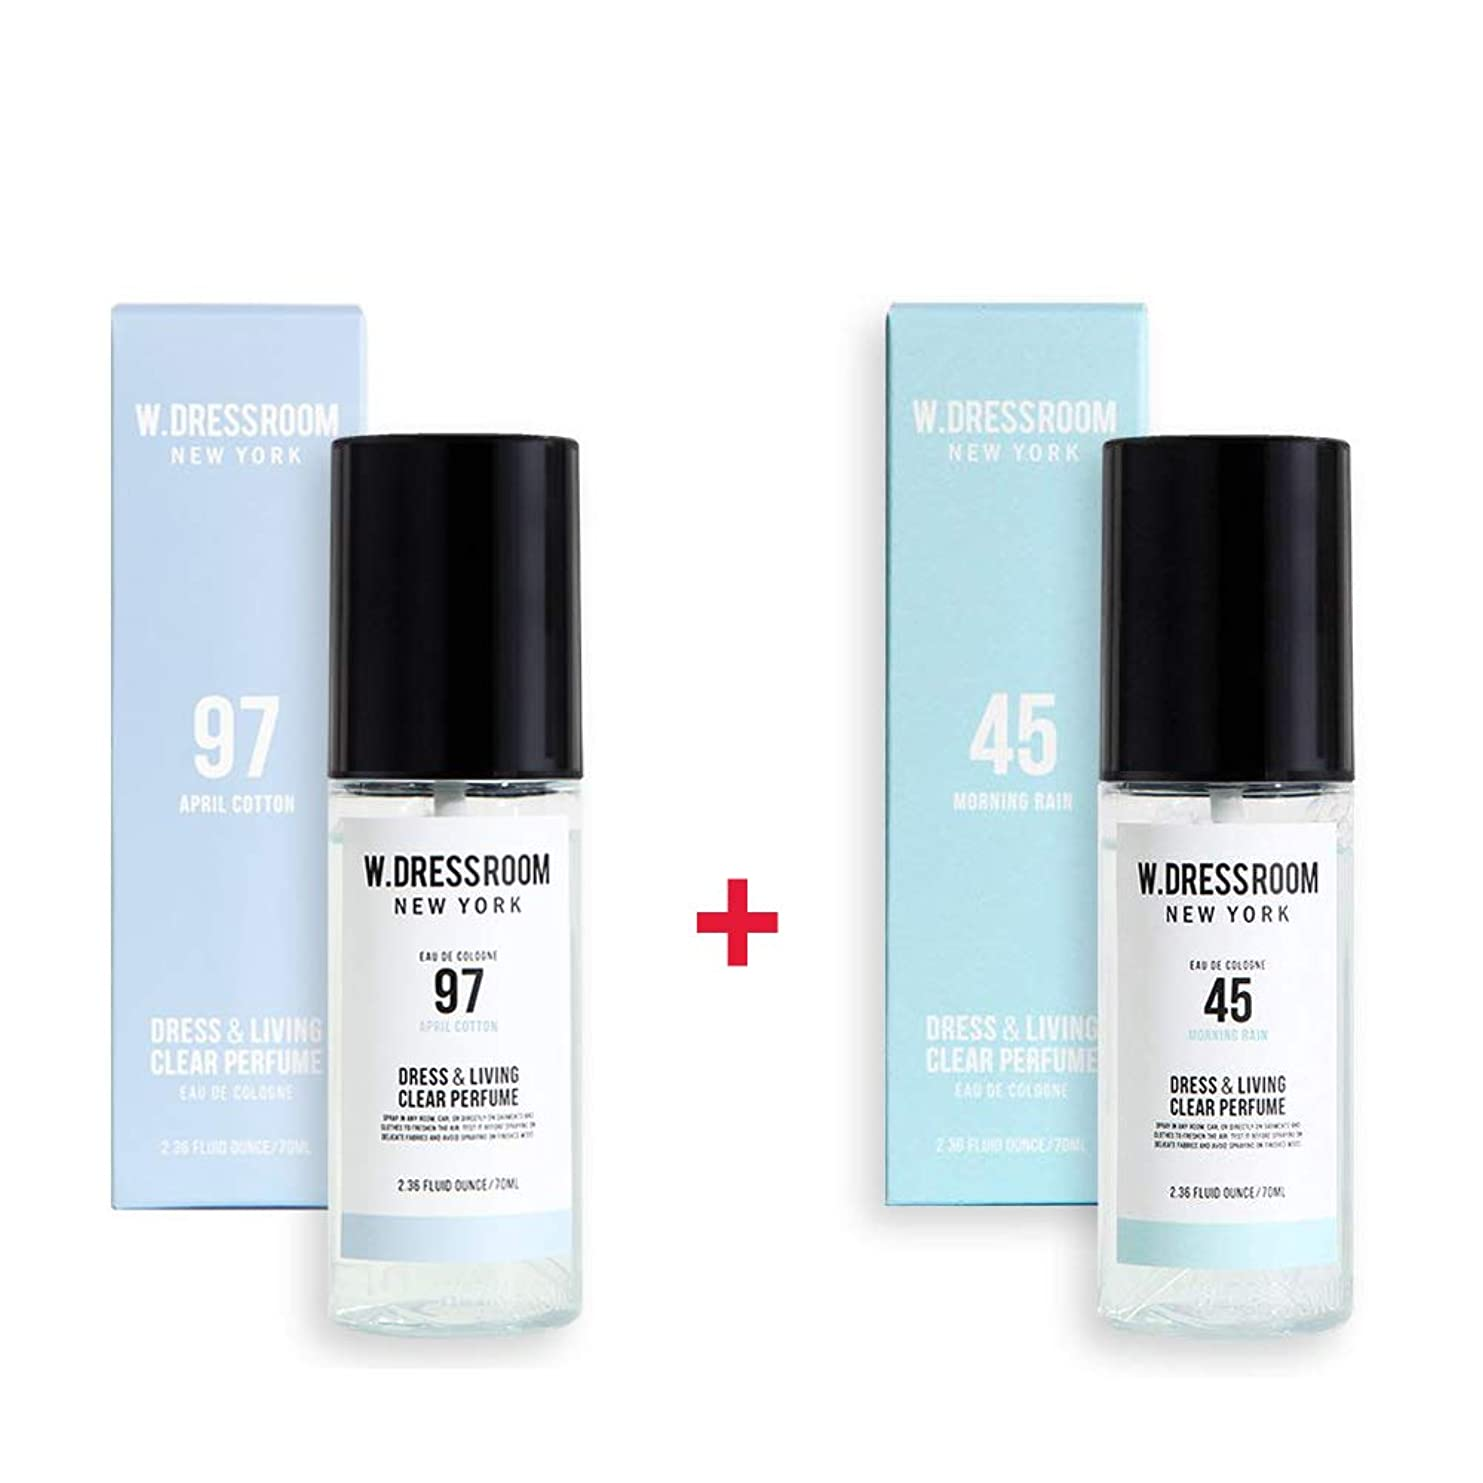 説教する侮辱道に迷いましたW.DRESSROOM Dress & Living Clear Perfume 70ml (No 97 April Cotton)+(No 45 Morning Rain)